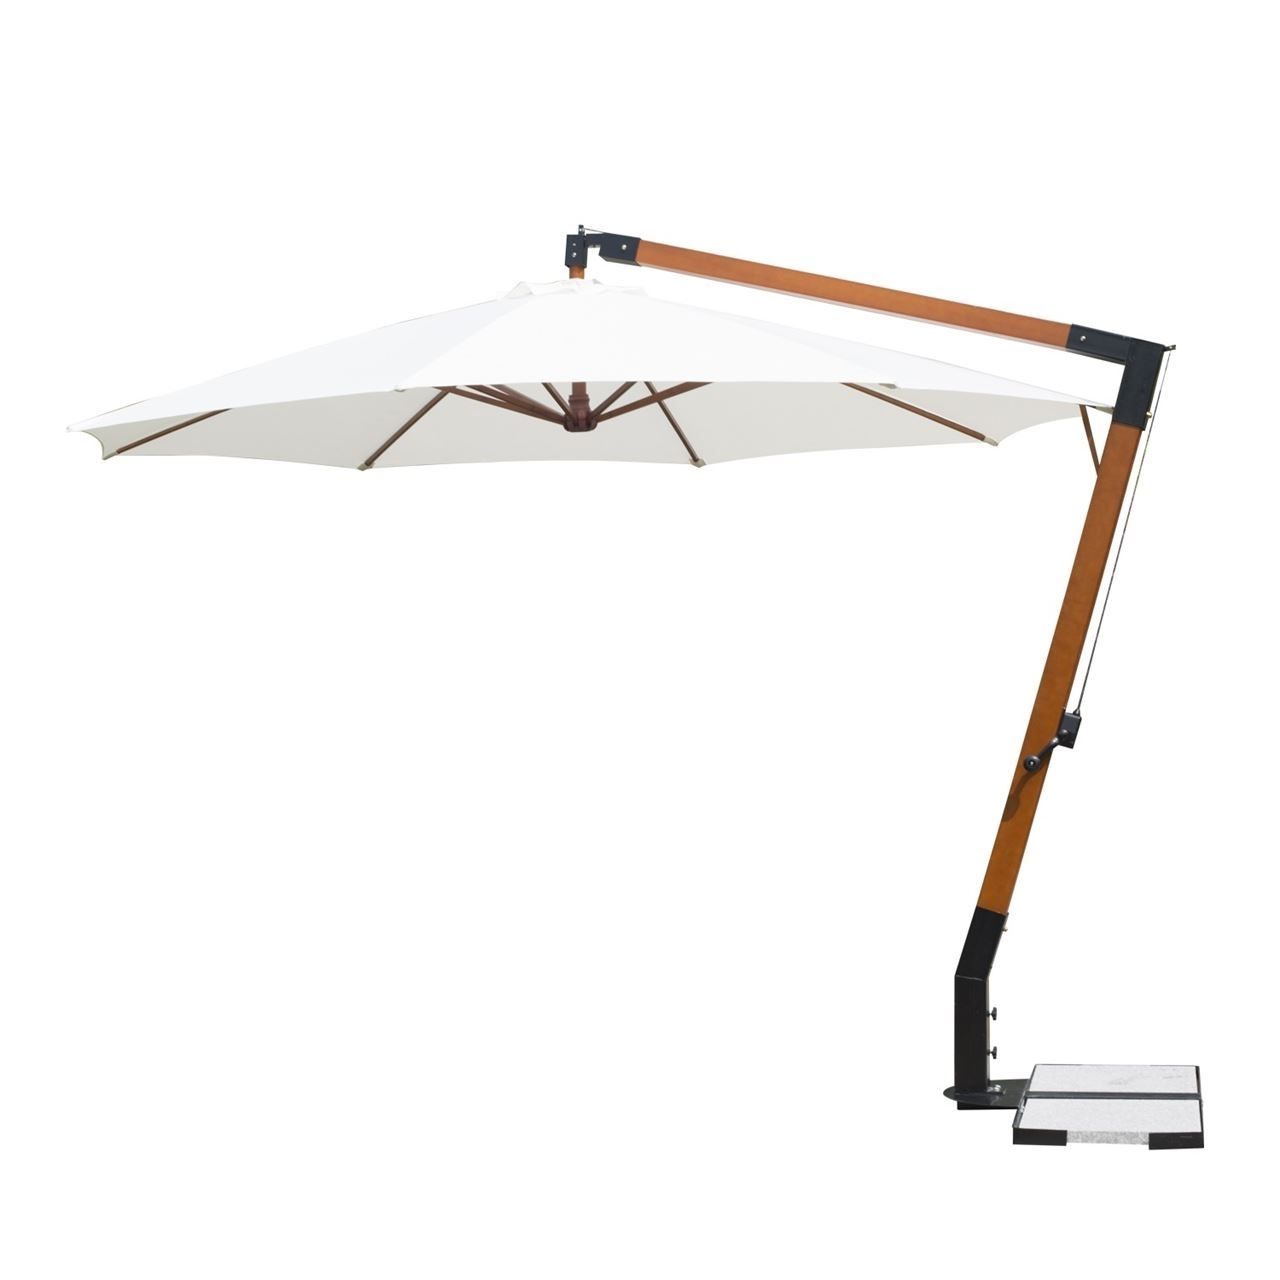 12' Wooden Hanging Offset Patio Umbrella With Throughout Well Known Hanging Offset Patio Umbrellas (Gallery 18 of 20)